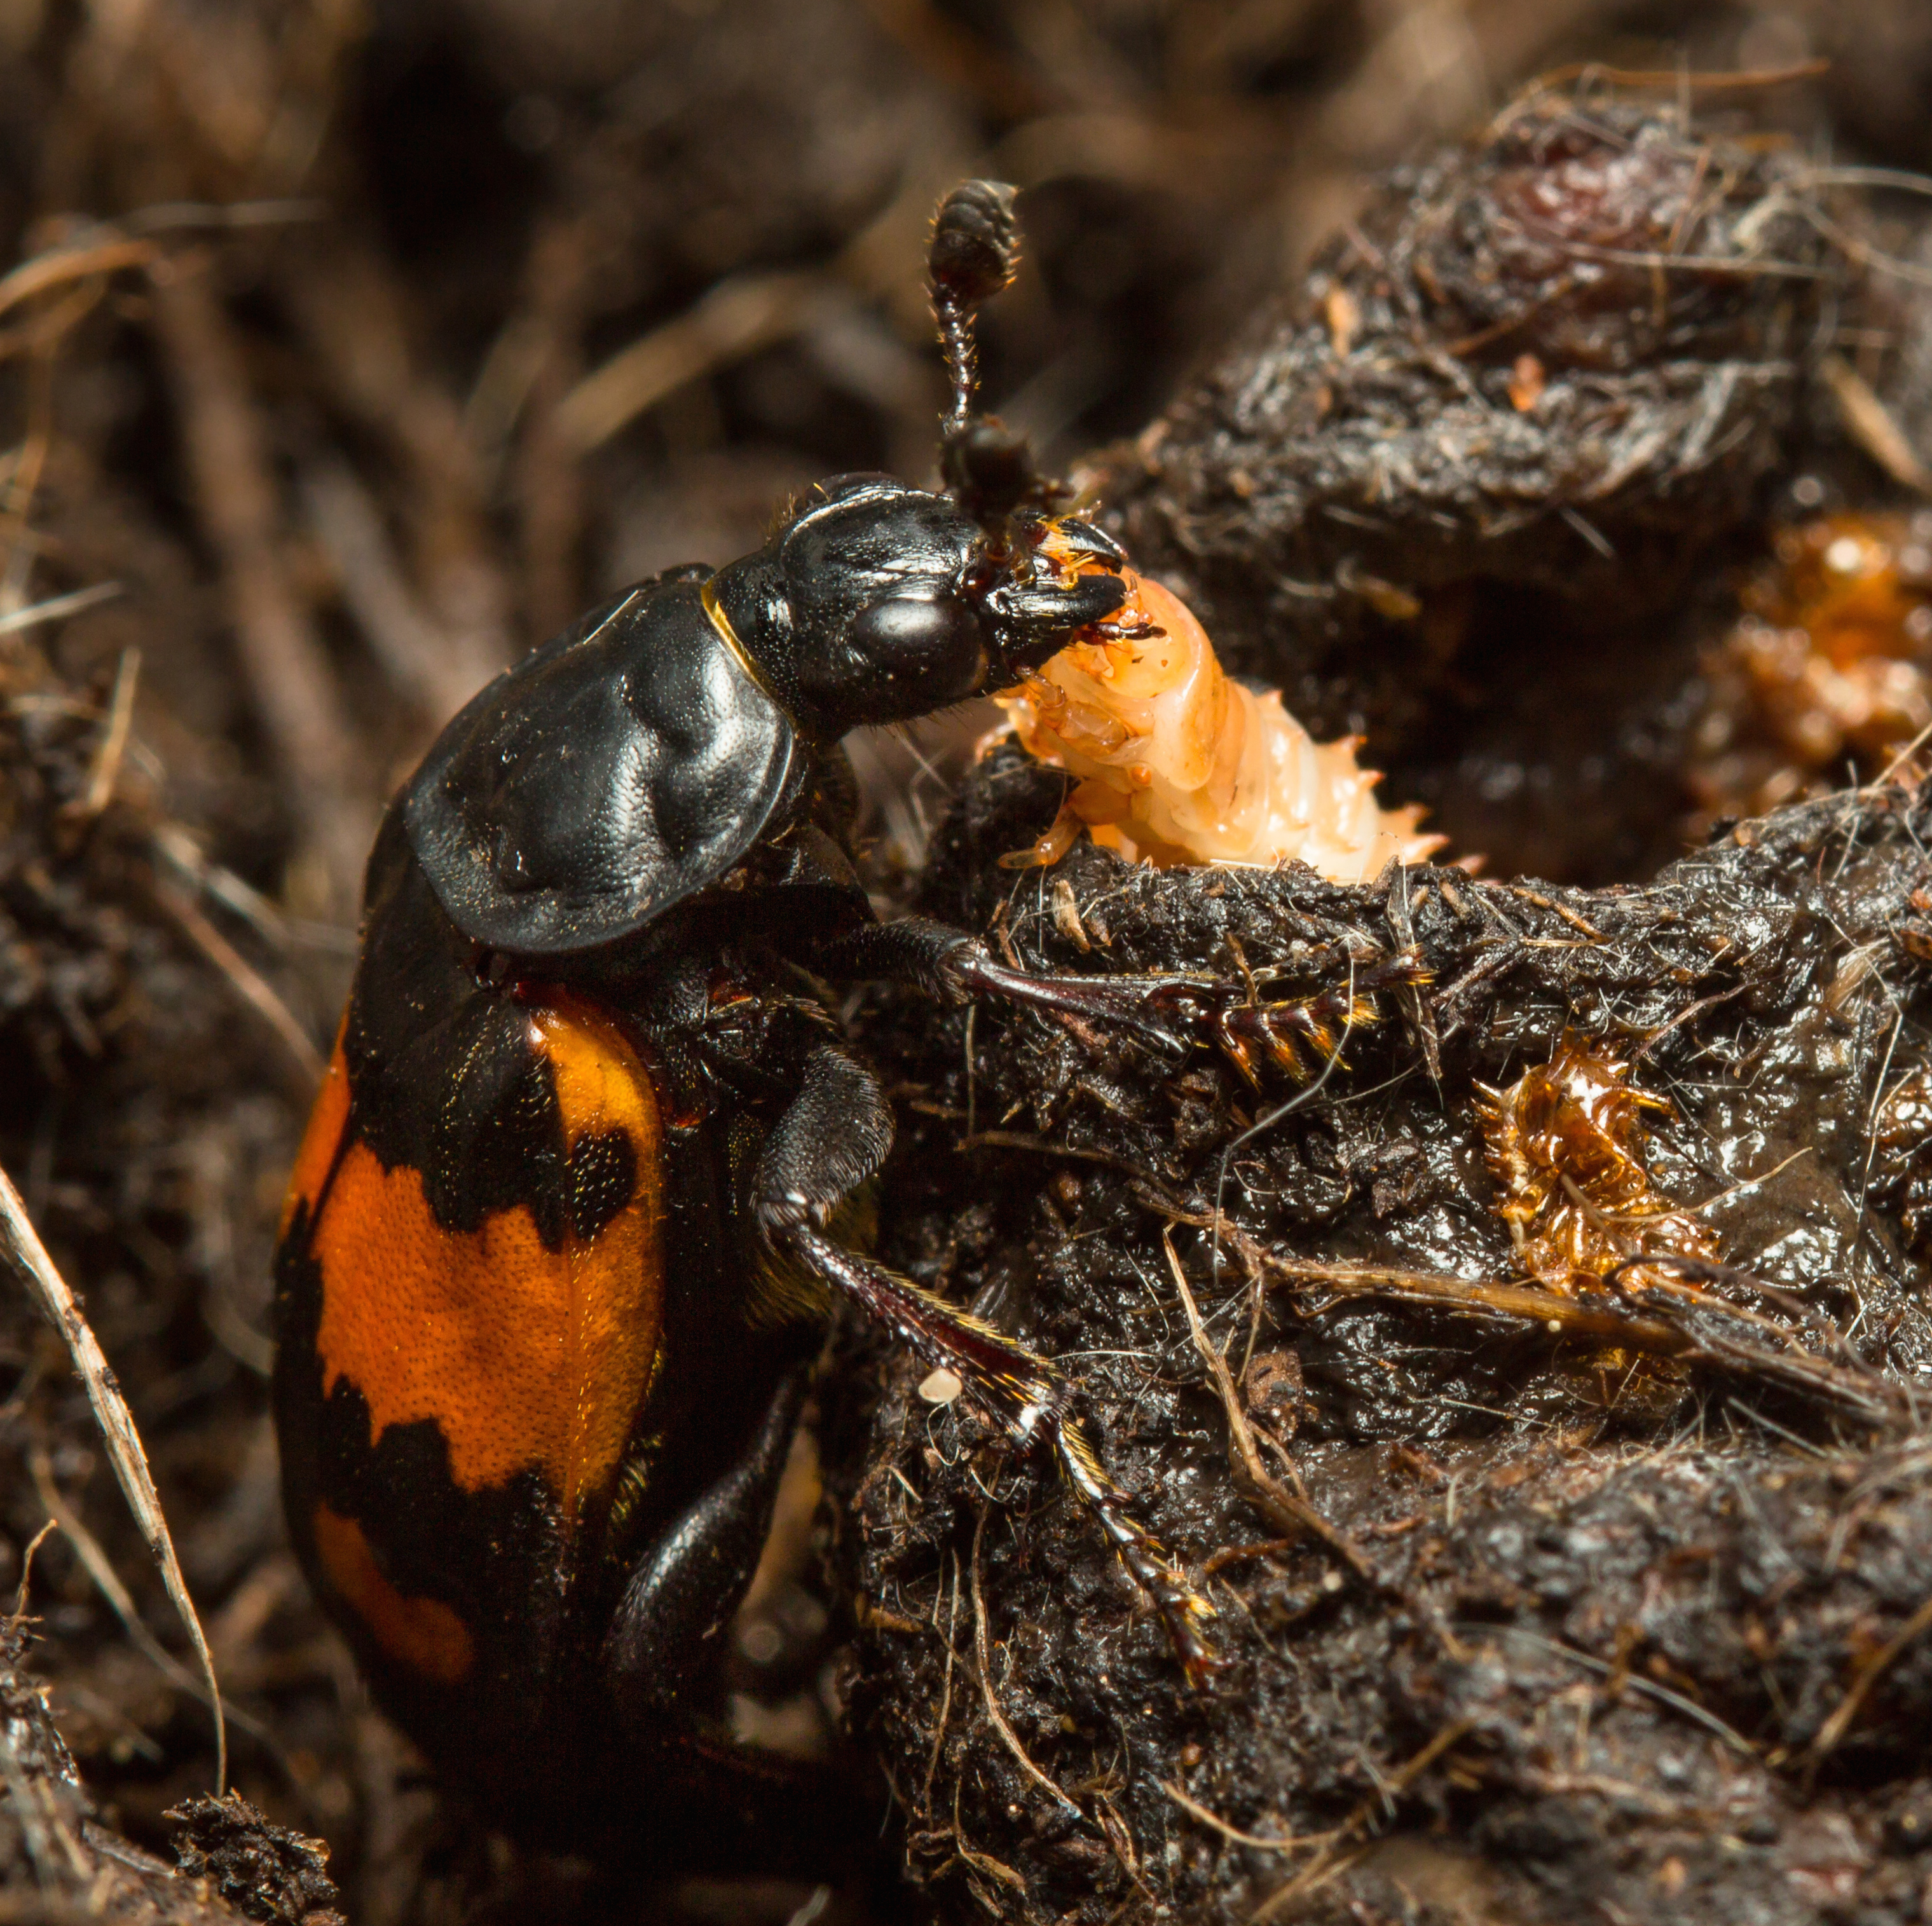 Neglected Baby Beetles Evolve Greater Self Reliance University